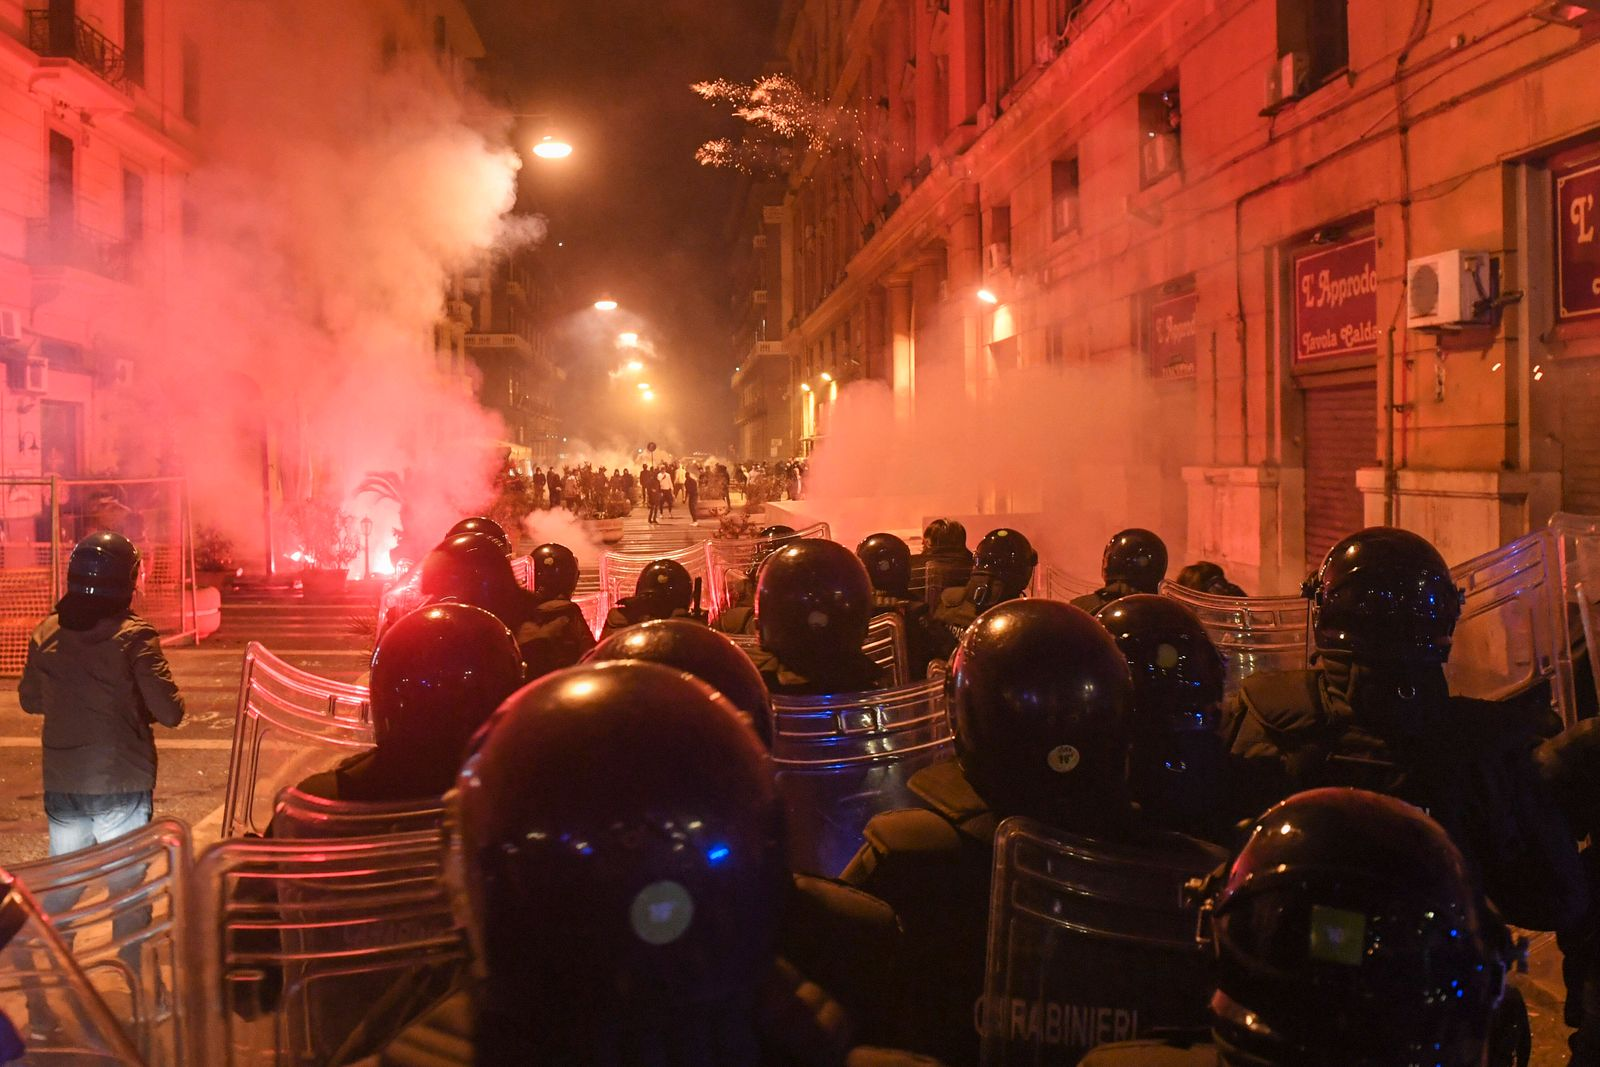 Hundreds of people clash against police during the protest over the curfew and the prospect of lockdown in Naples. The